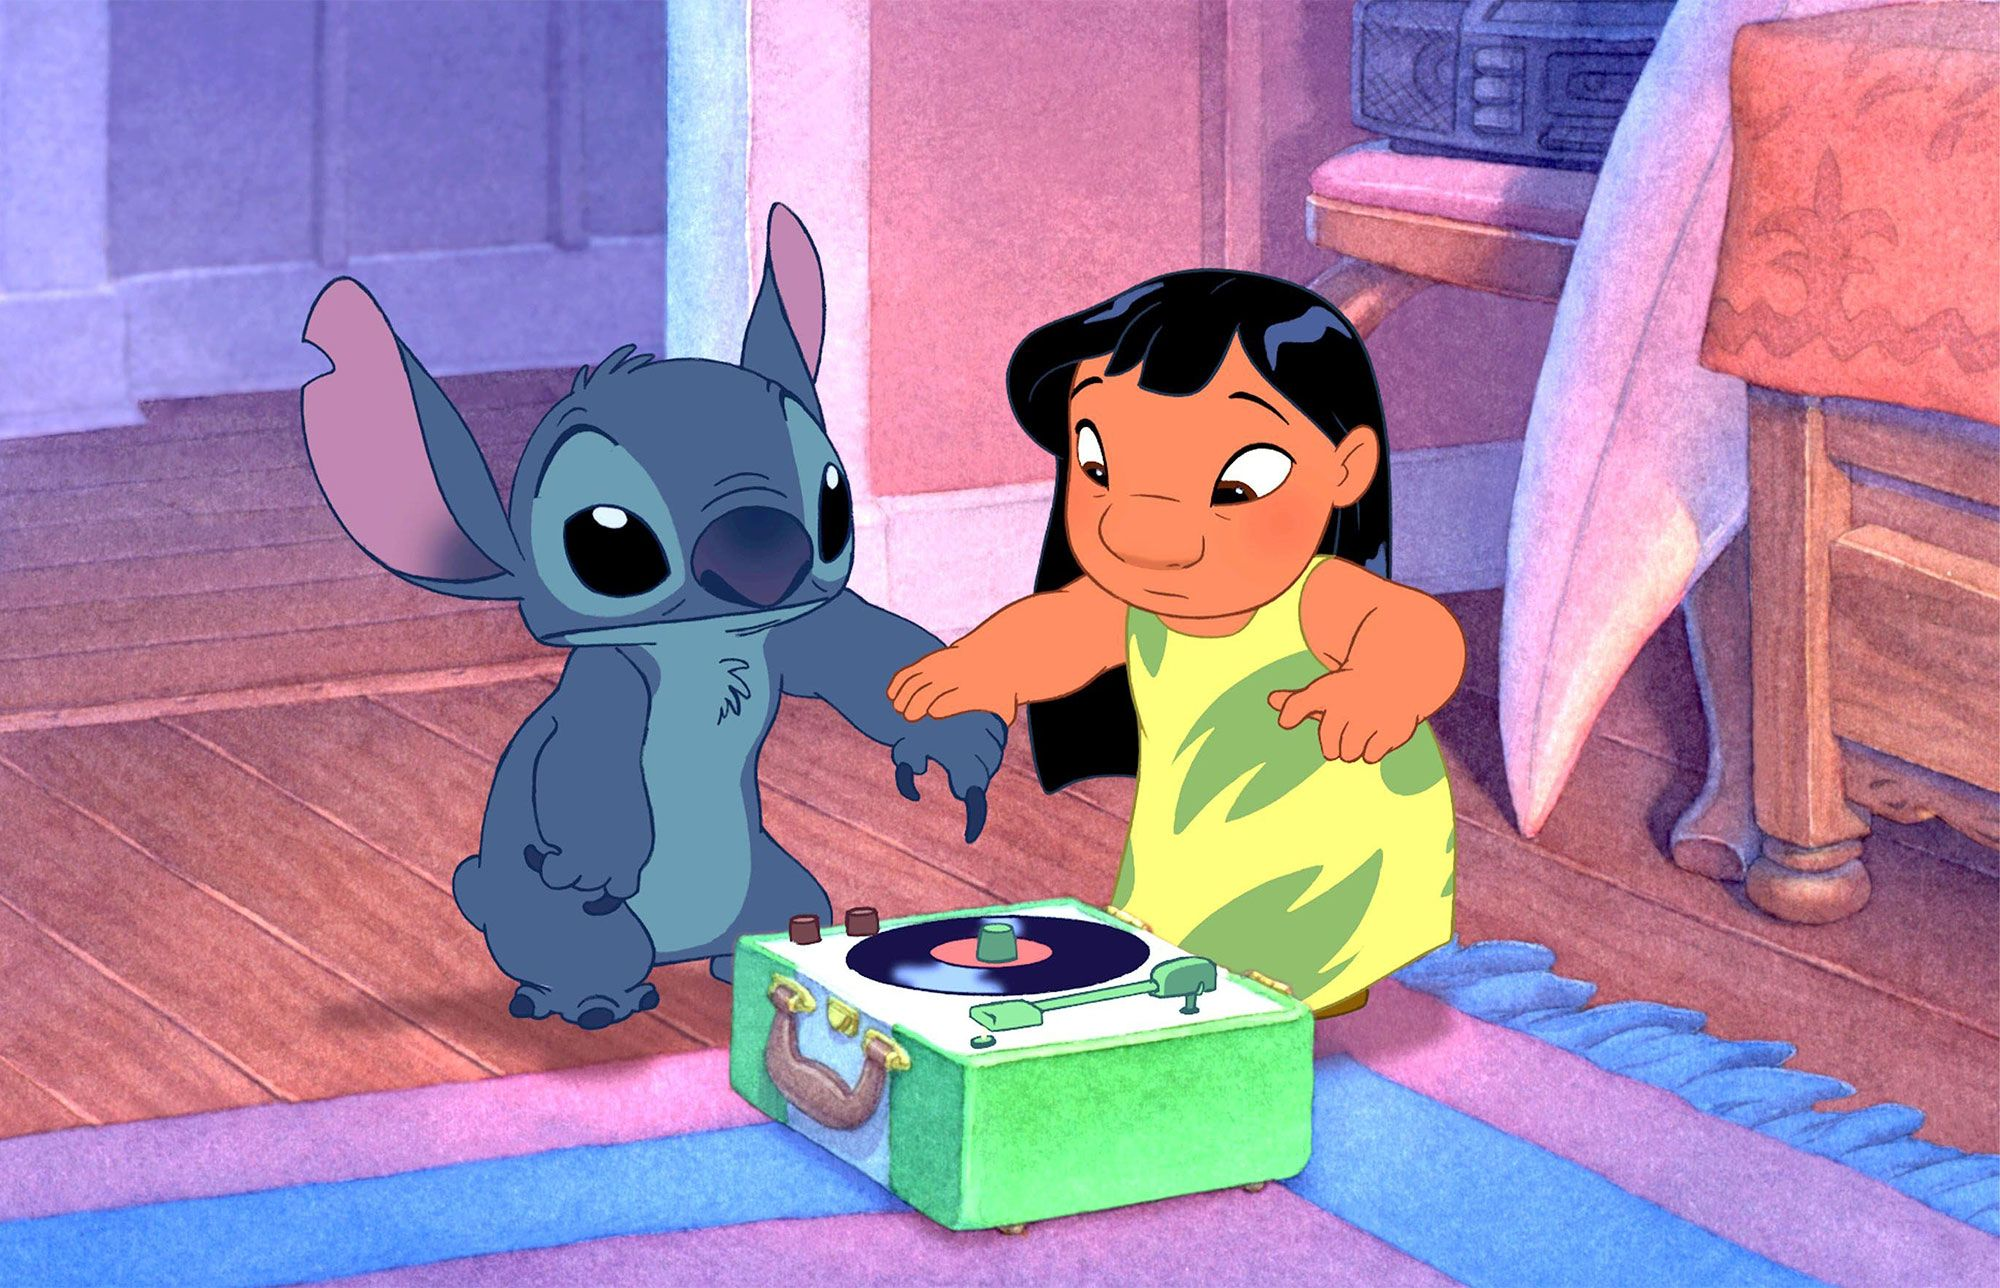 Lilo and Stitch and the record player